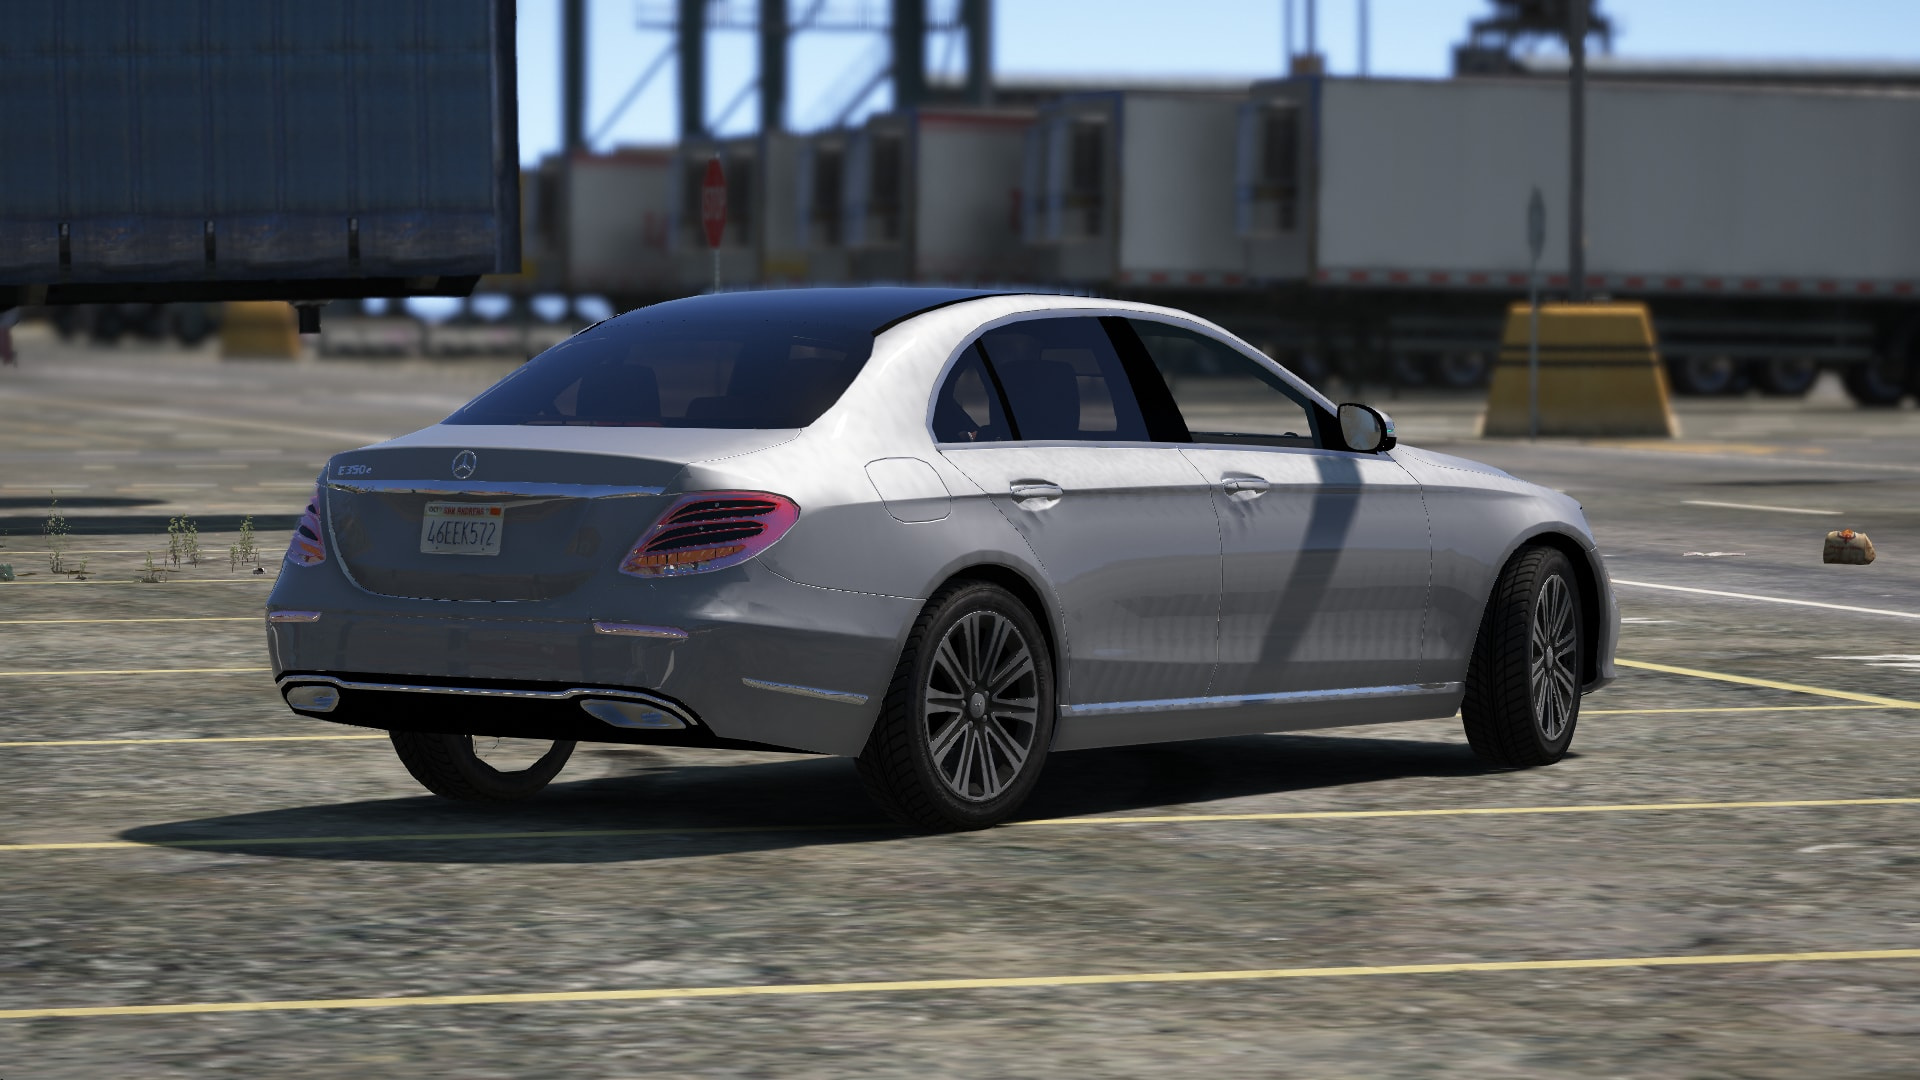 Mercedes benz e class 2015 gta5 for Mercedes benz gta